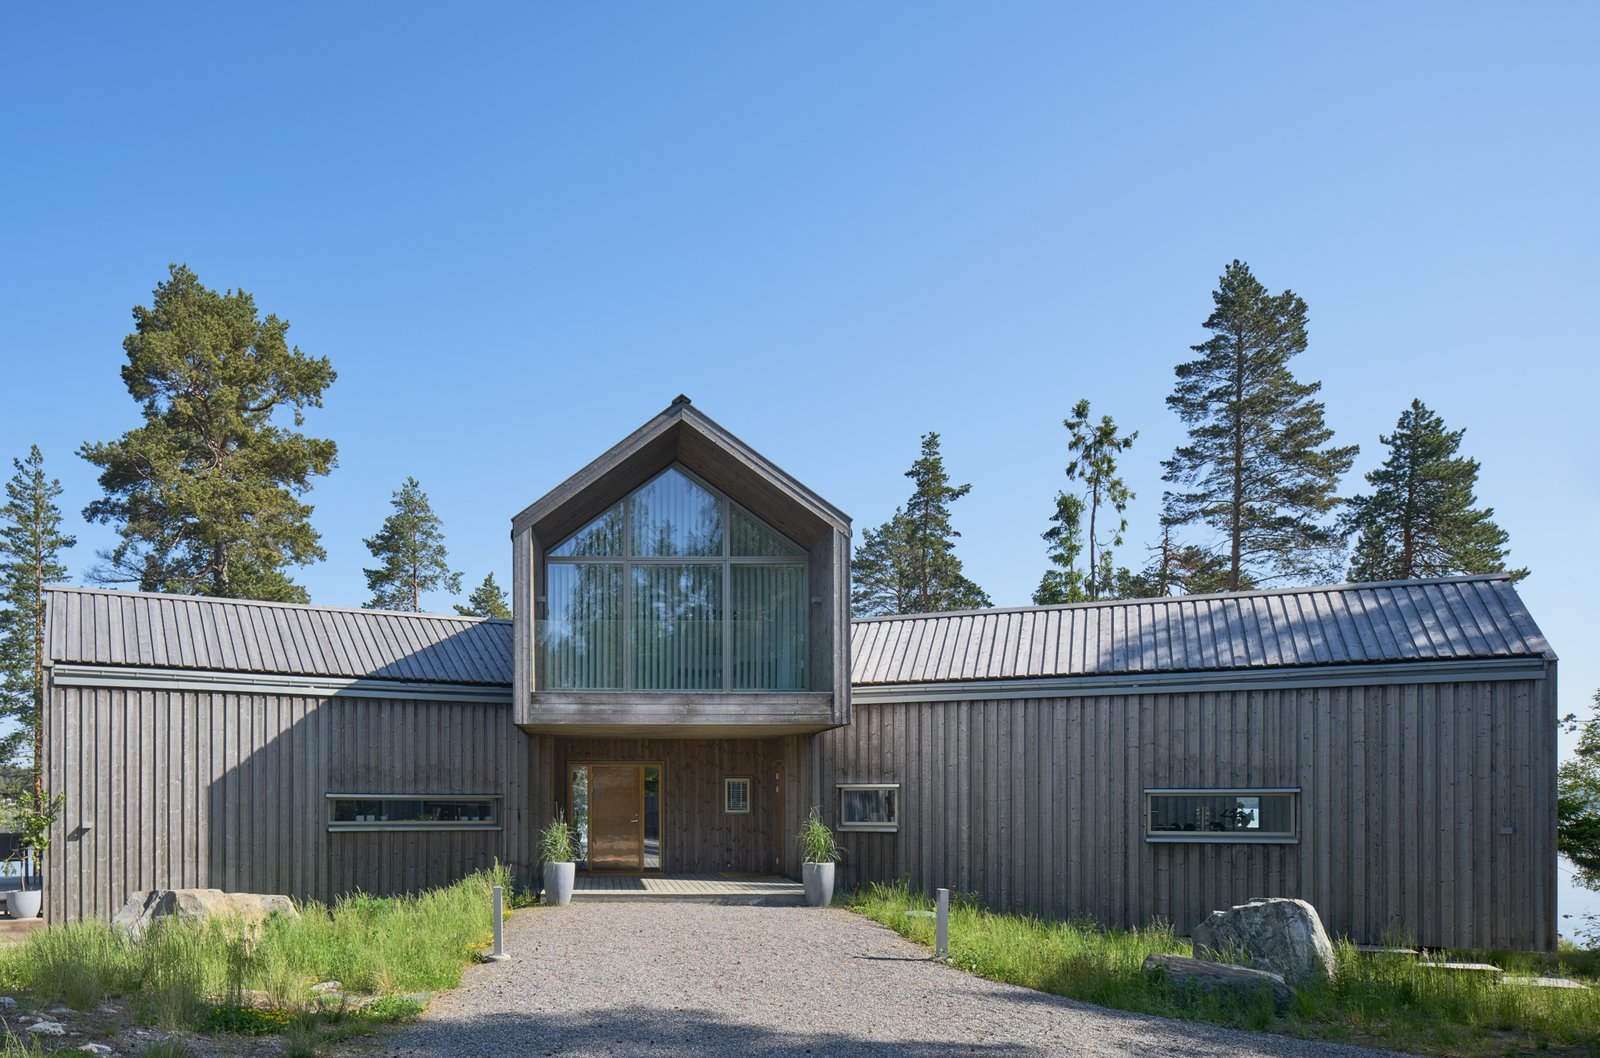 Exterior, Cabin Building Type, House Building Type, Glass Siding Material, Gable RoofLine, Metal Roof Material, and Wood Siding Material  Photo 9 of 21 in A Swedish Family's Dreamy Villa Fans Out For Lakeside Views